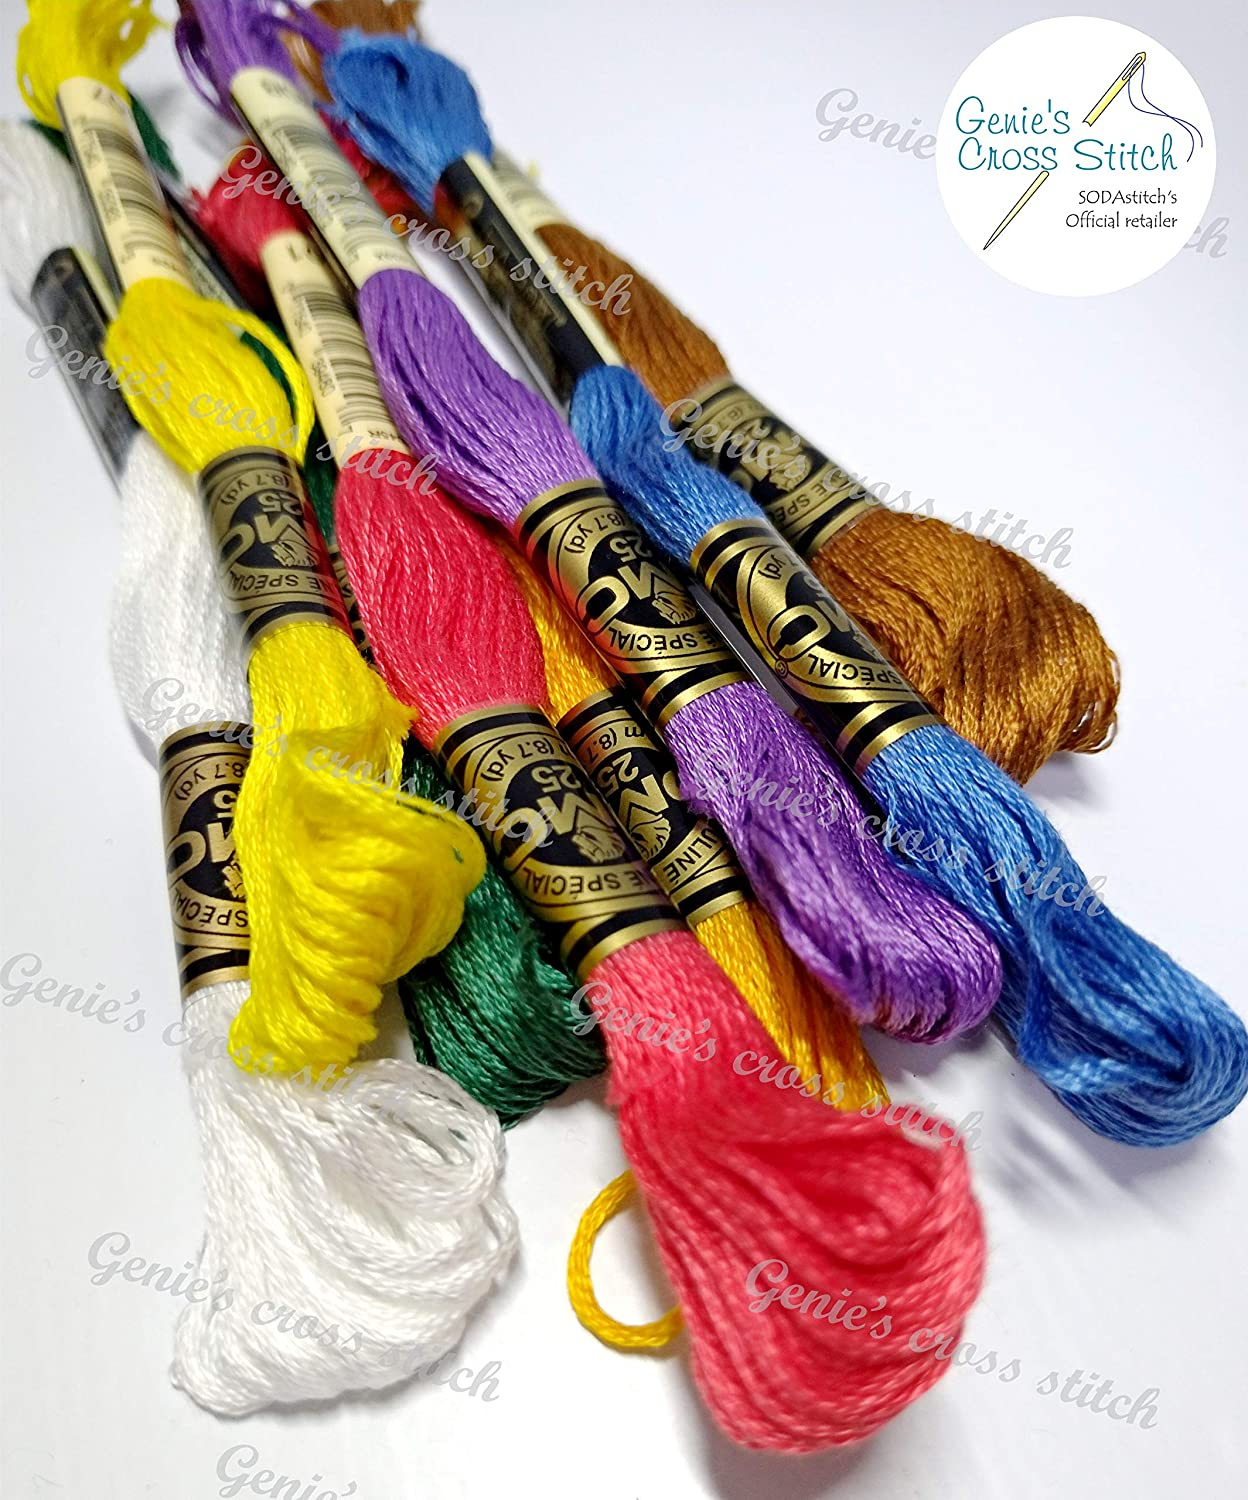 DMC Hilo de Algodón Trenzado Color 3362 para el bordado /& Cross Stitch